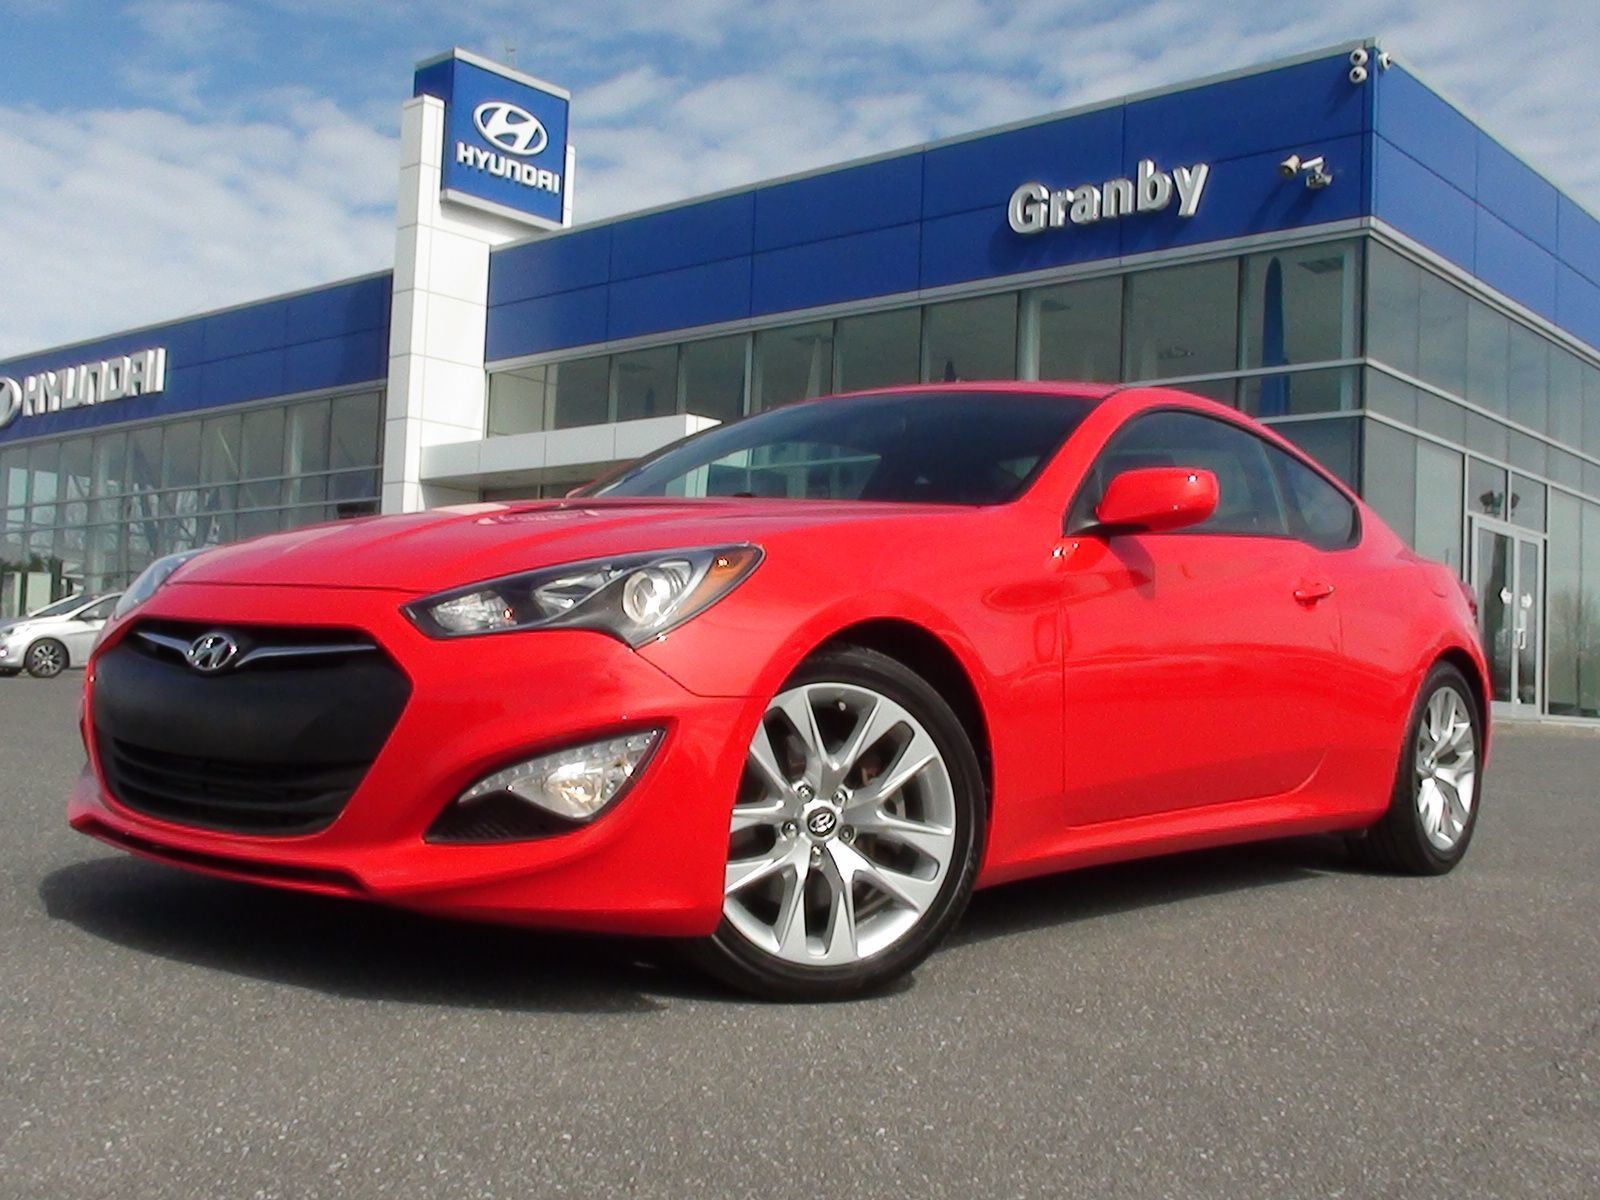 2013 hyundai genesis coupe 2 0 l t mags fogs quipement complet d 39 occasion granby inventaire. Black Bedroom Furniture Sets. Home Design Ideas